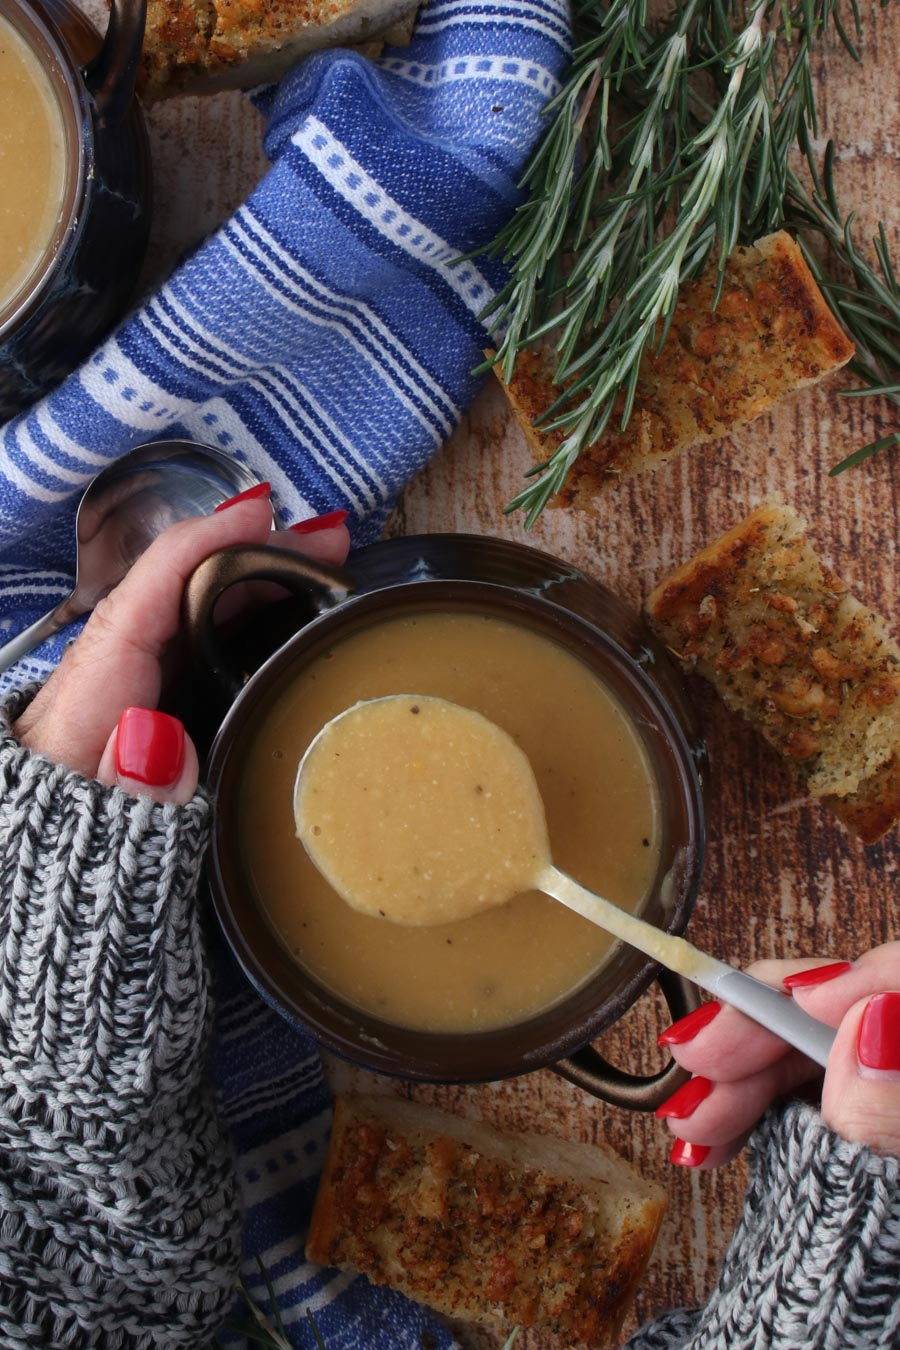 Woman's hands holding a bowl of bean soup